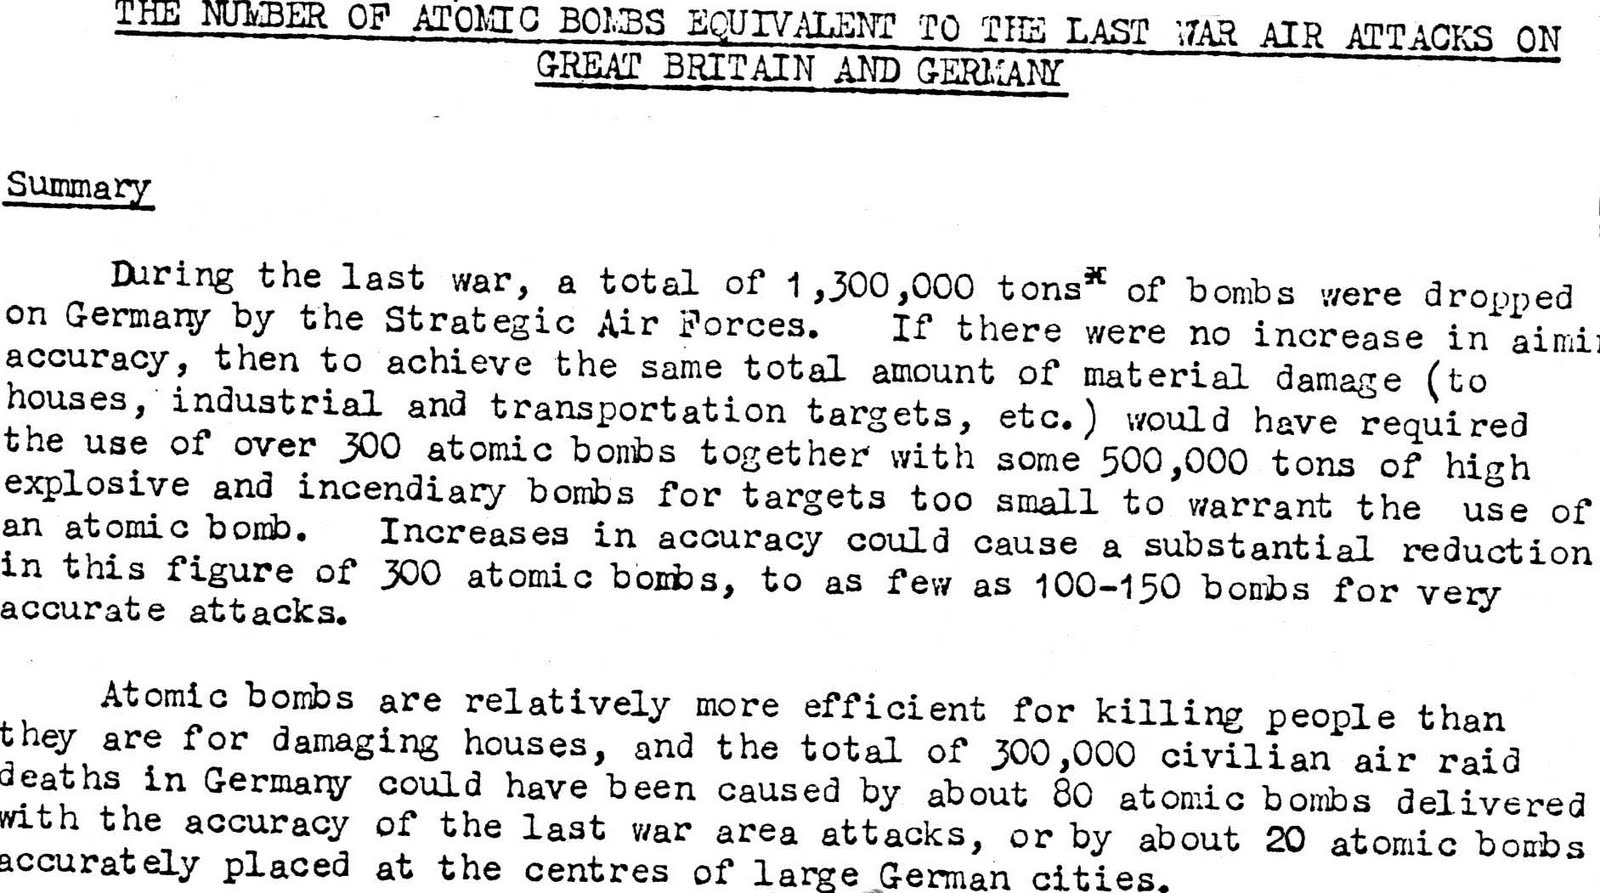 effects of nuclear weapons on world peace in the real not above home office scientific advisory branch s top secret report of 30 1950 comparing hiroshima to wwii air raids number of atomic bombs